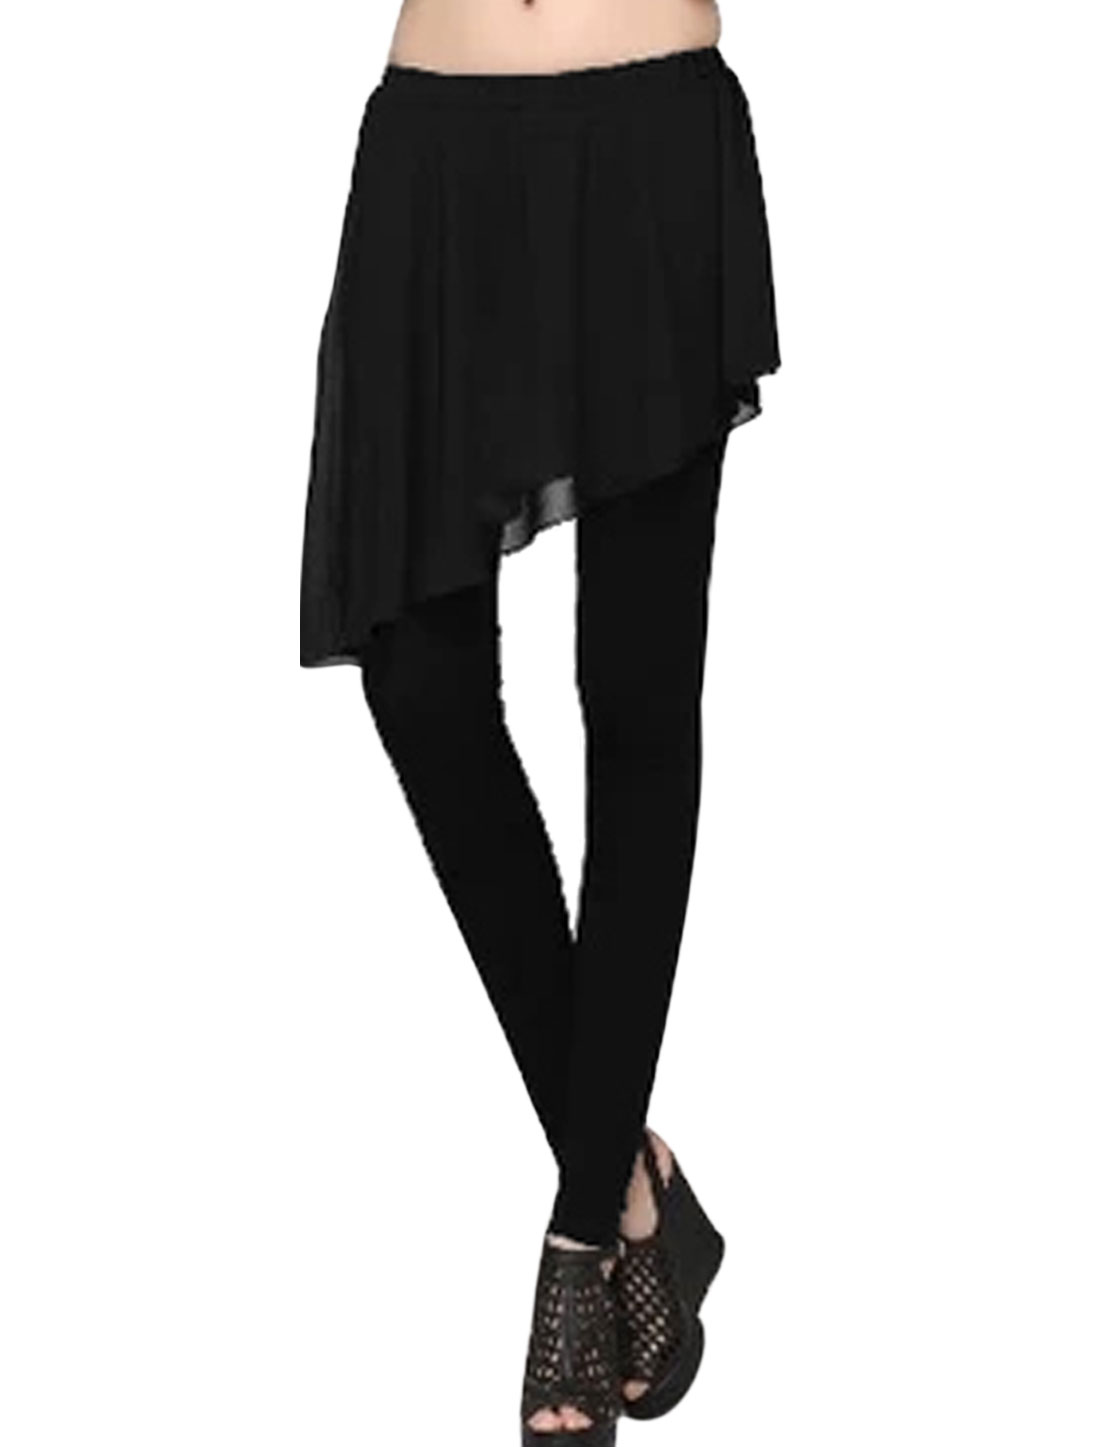 Lady Elastic Waist Chiffon Panel Irregular Hem Skirt Leggings Black XS